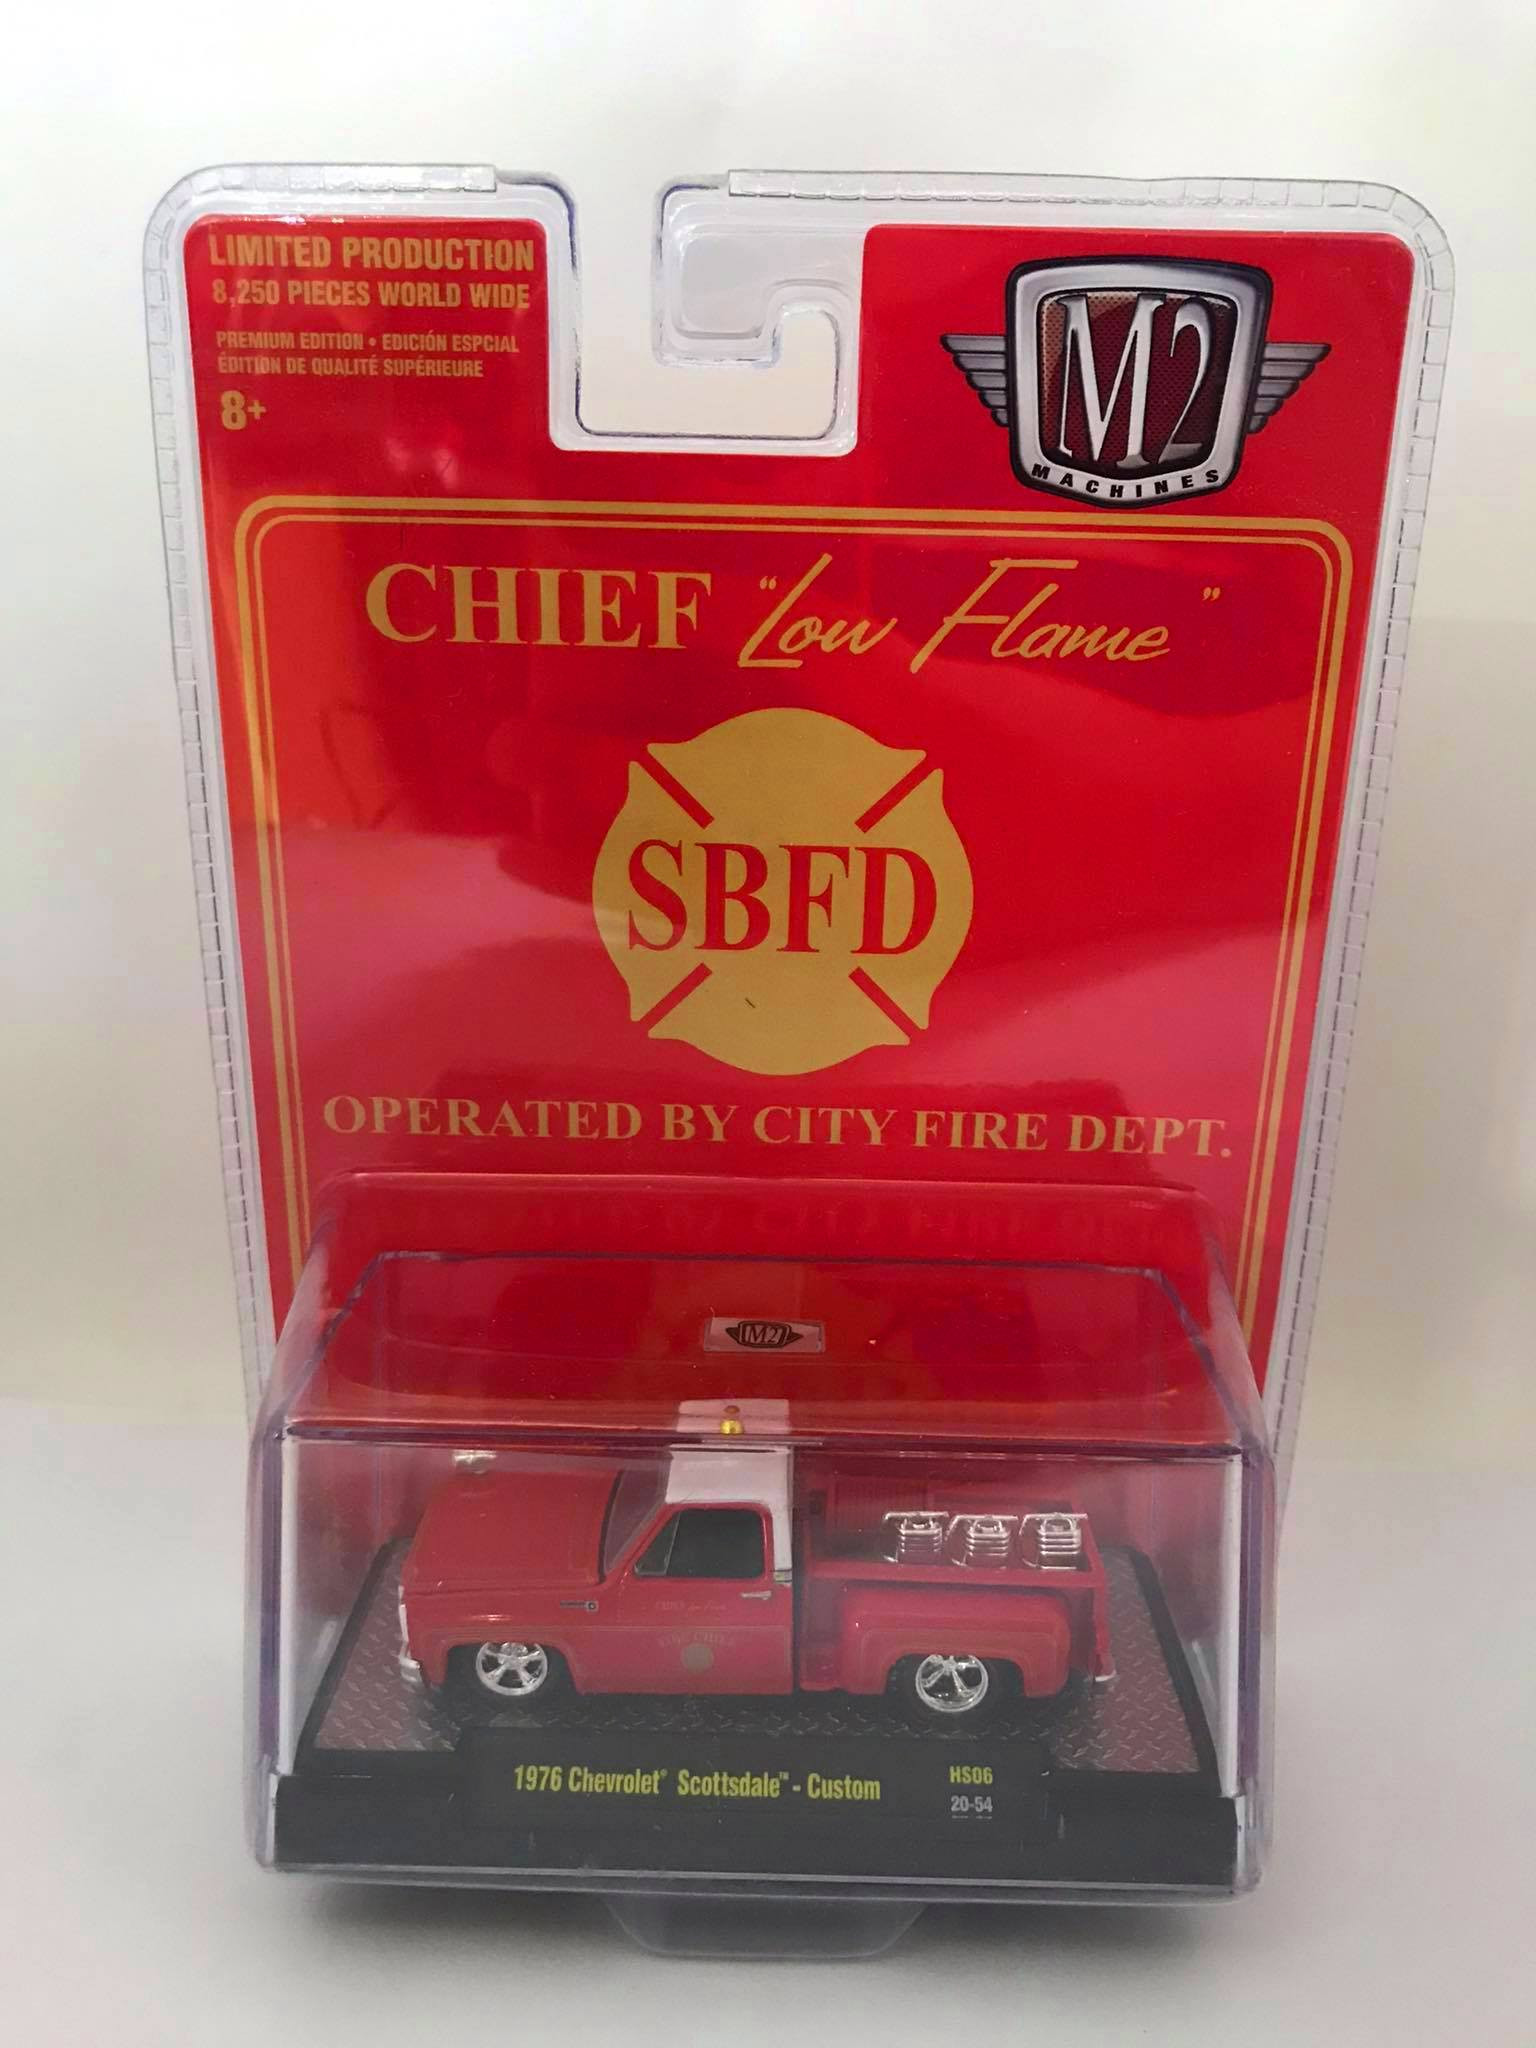 M2 Machines - 1976 Chevrolet Scottsdale - Custom - Chief Low Flame SBFD Operated By City Fire Dept